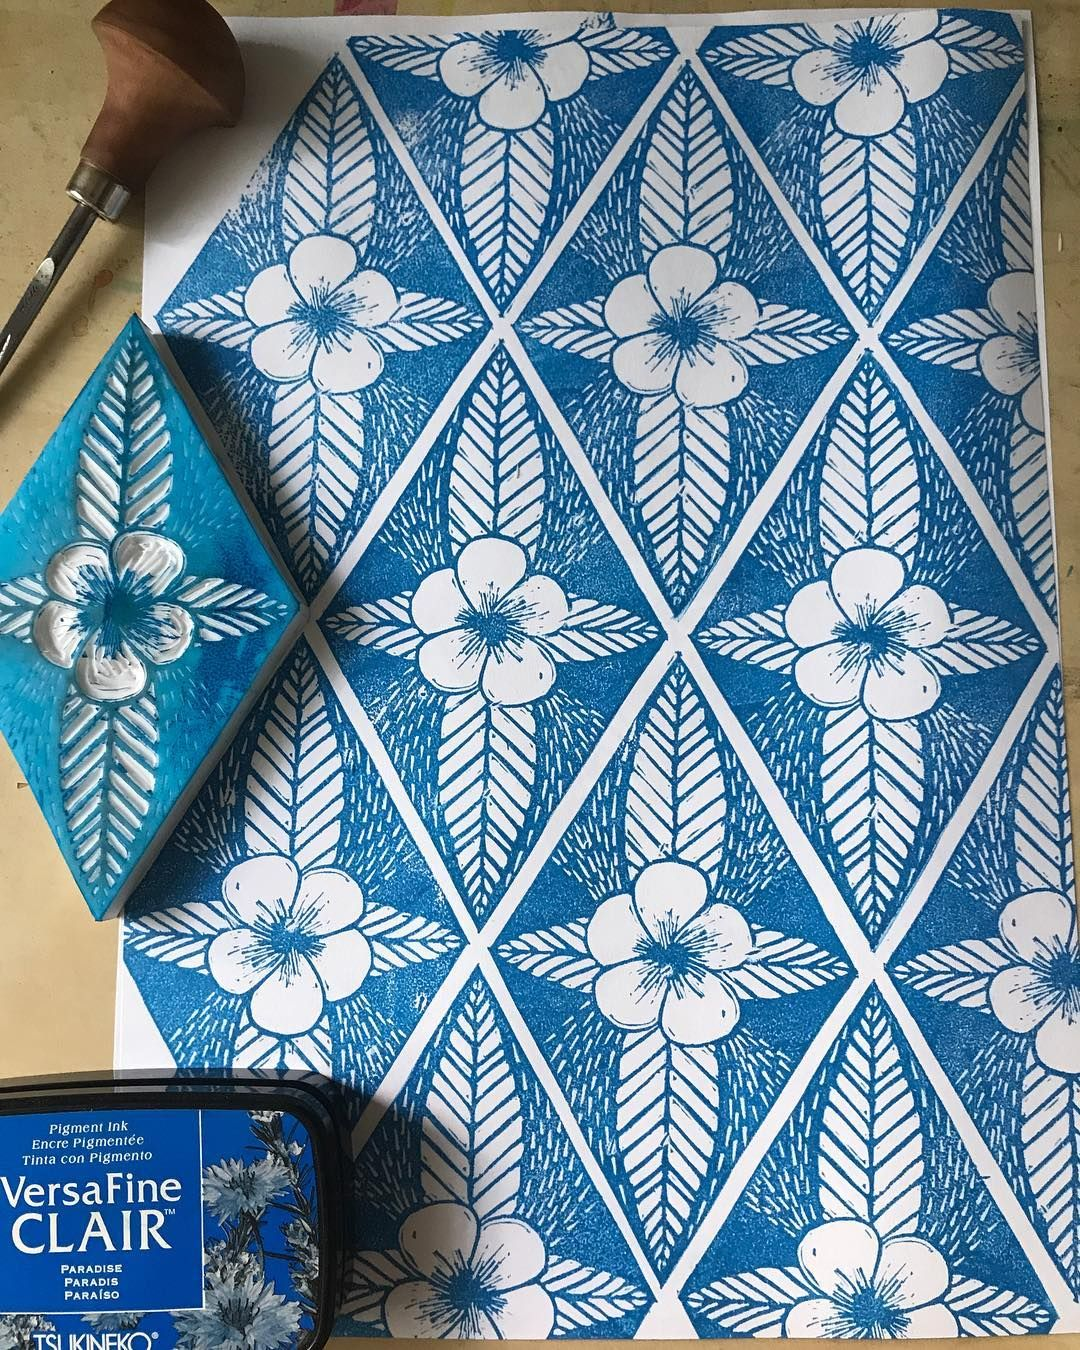 Linoleum Print Which Can Easily Be Used To Create A Repeating